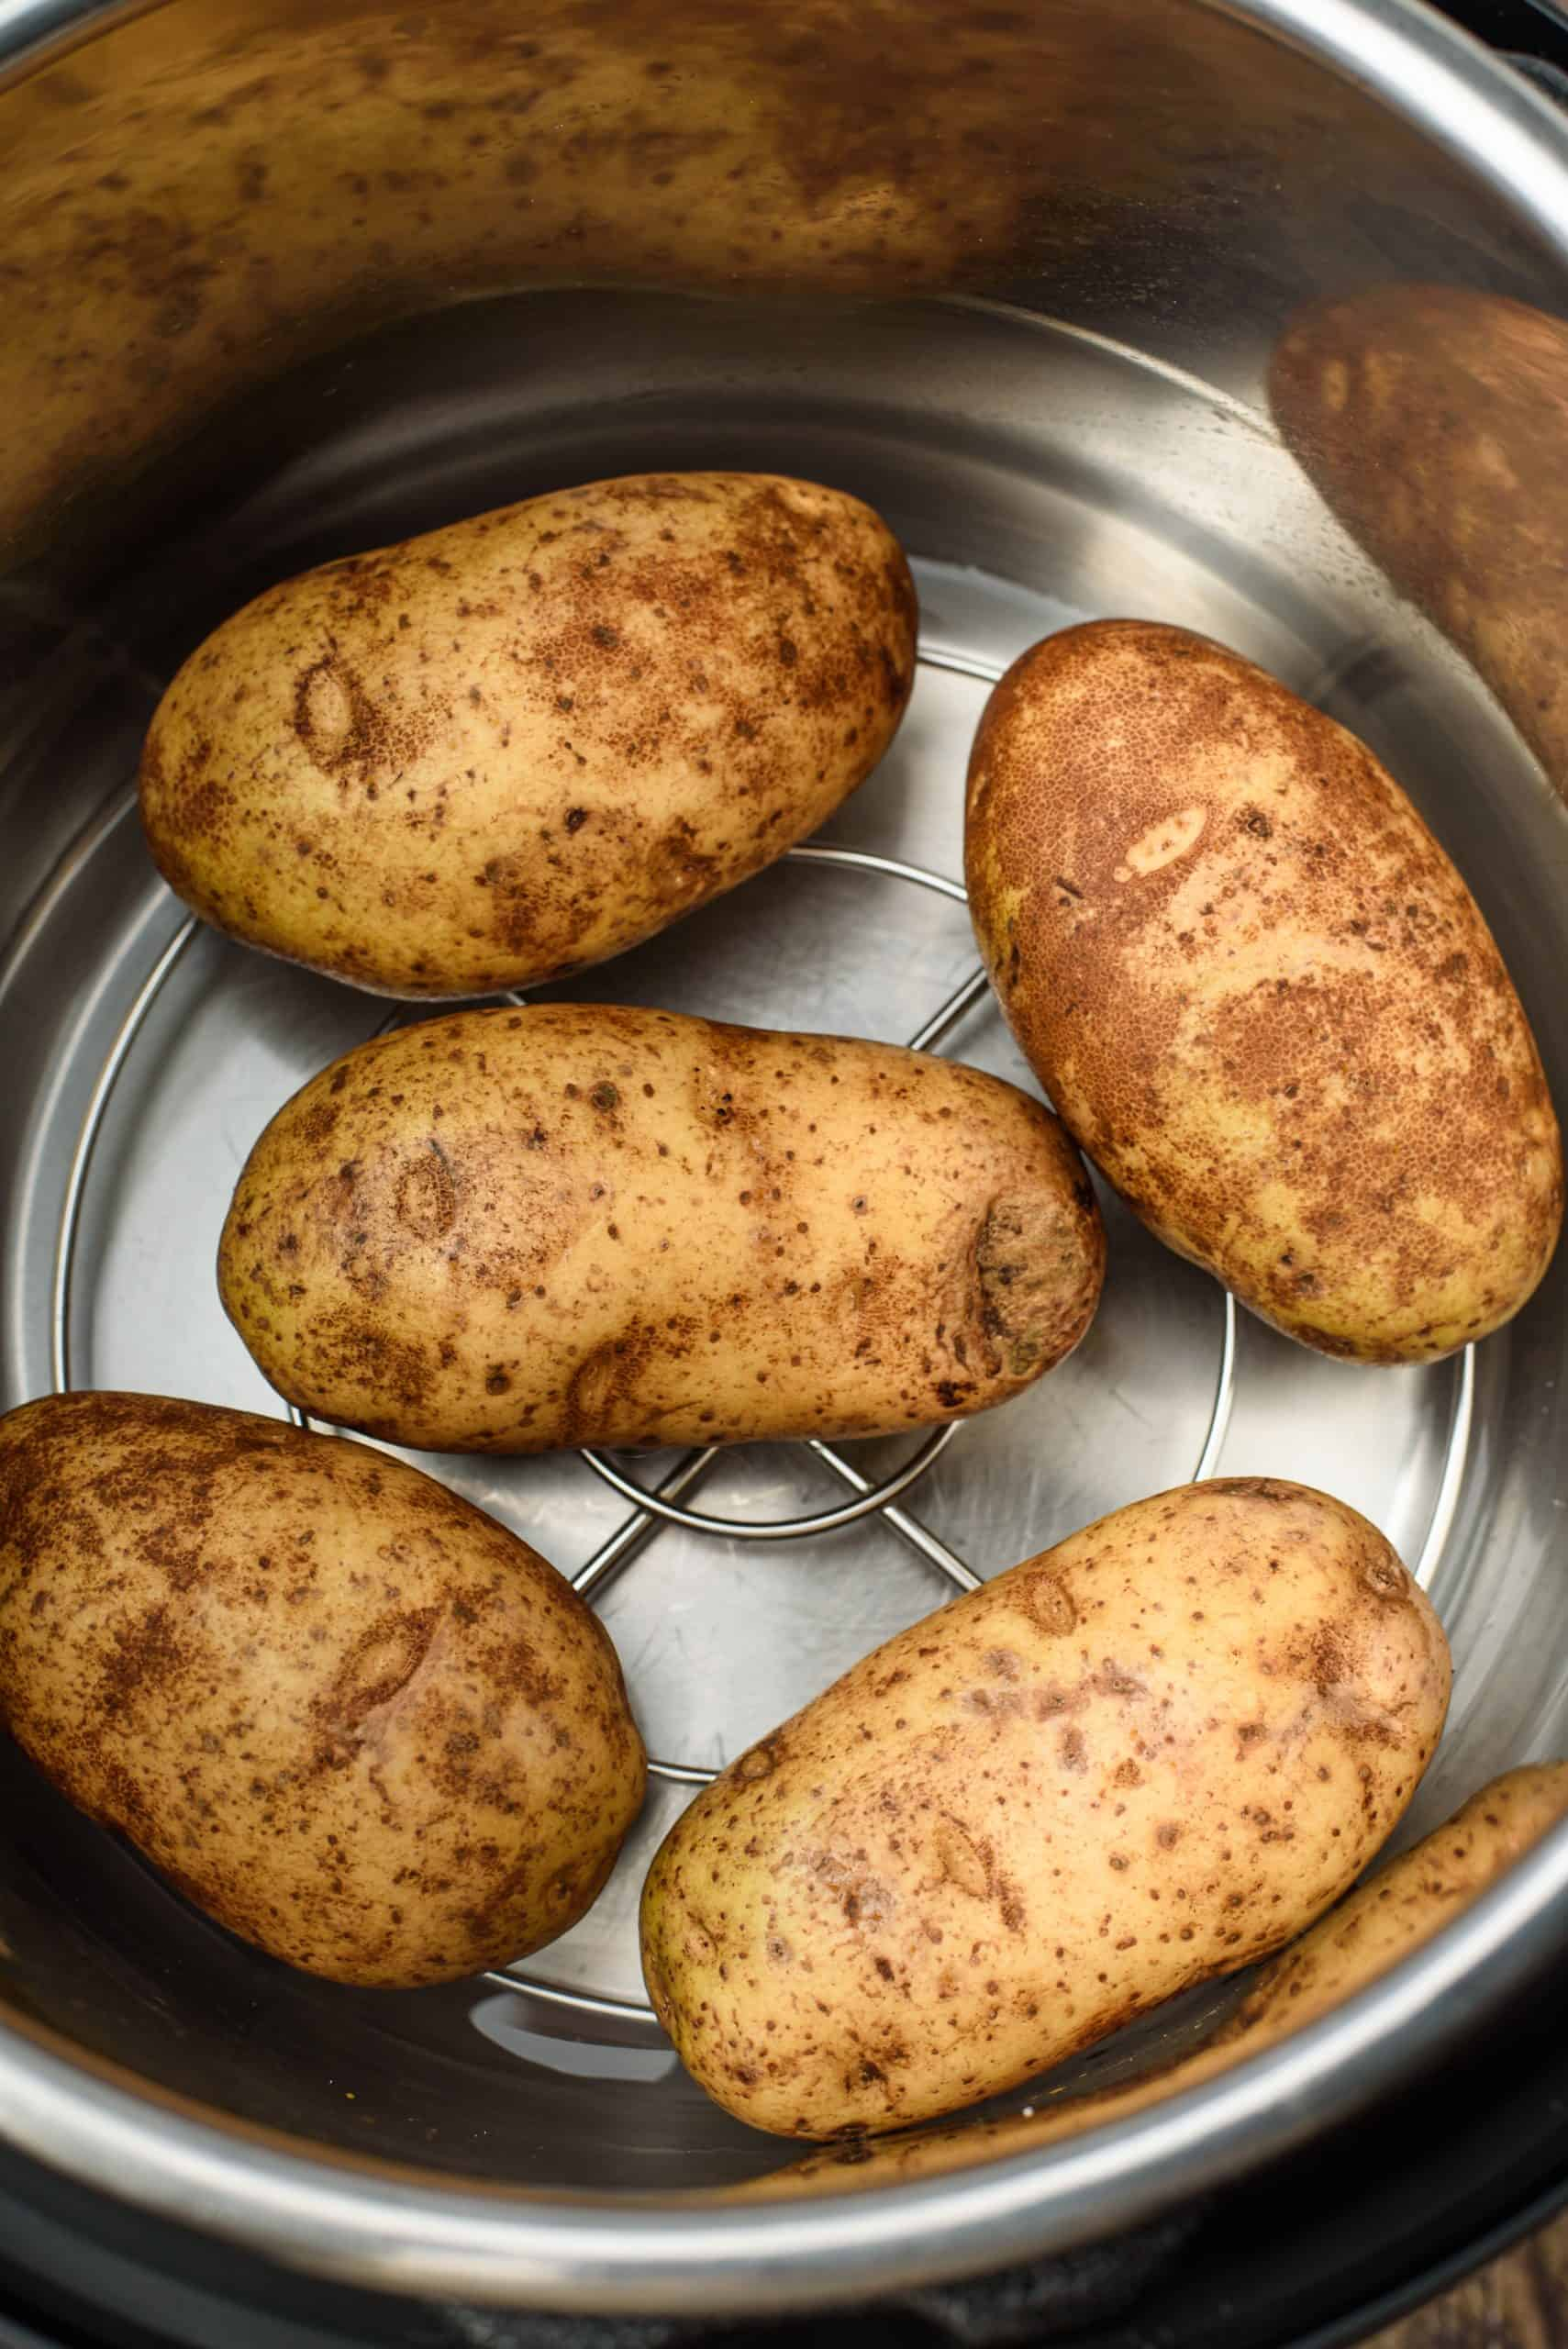 Russet Potatoes in the Instant Pot for cooking